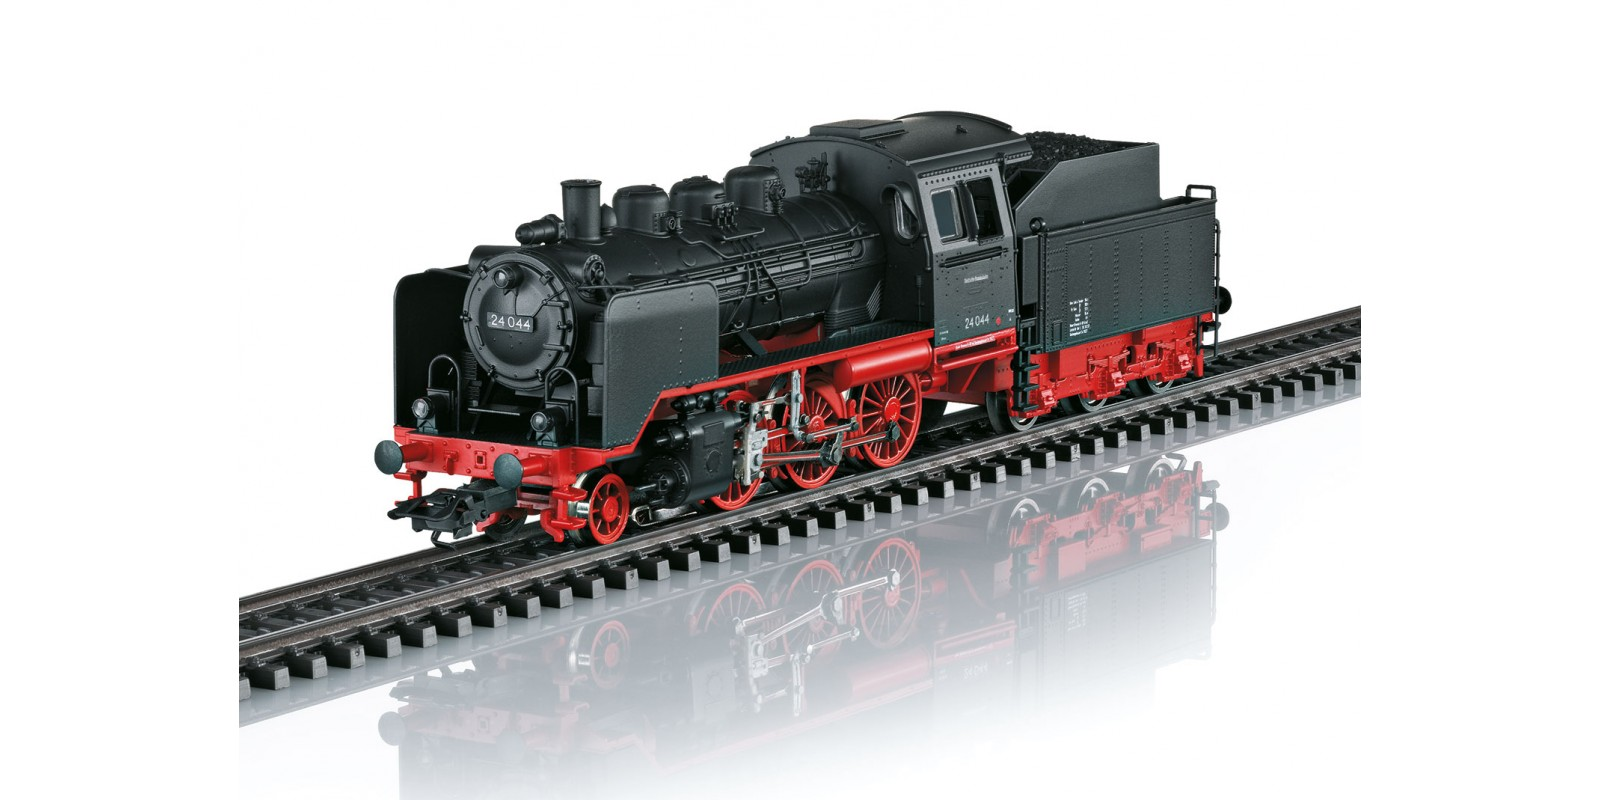 36244 Class 24 Steam Locomotive with a Tender